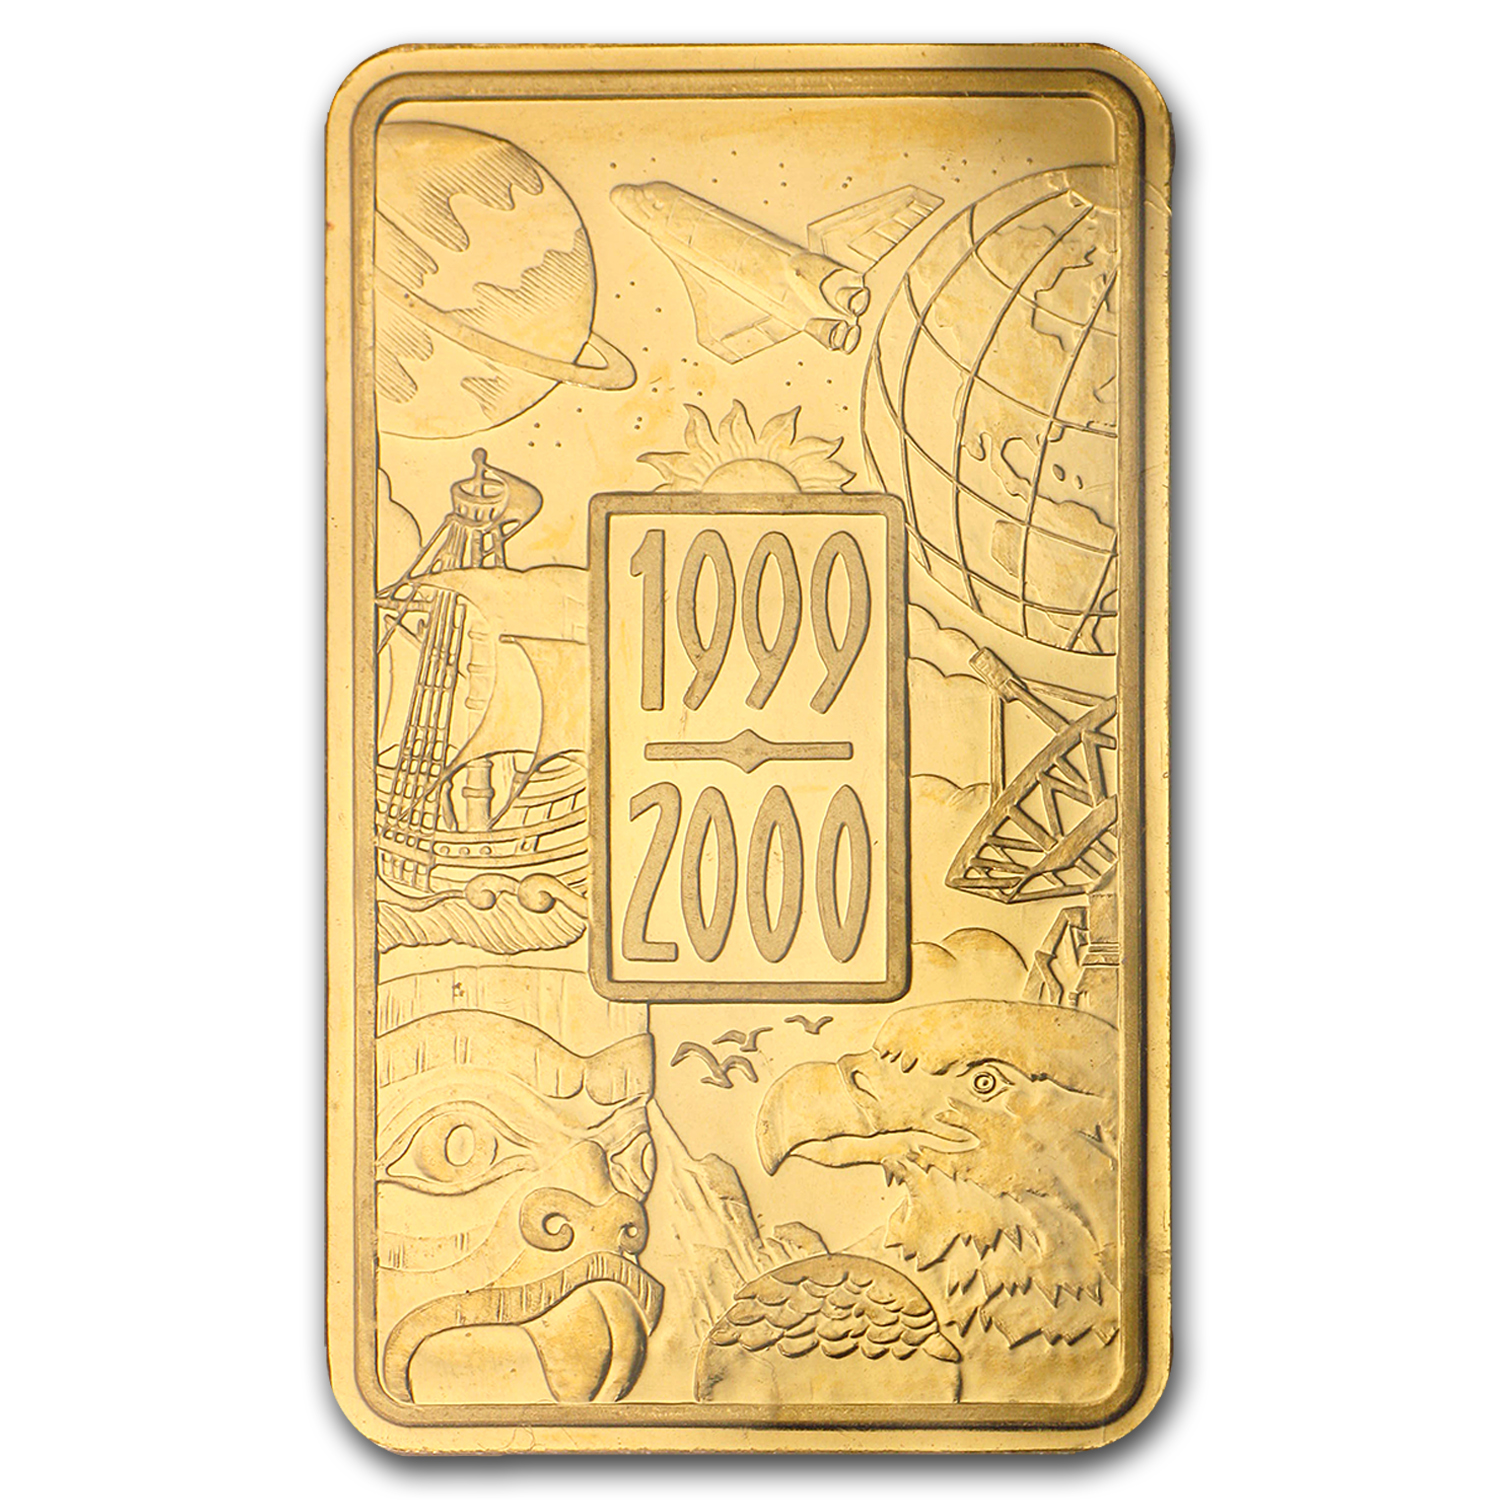 1 oz Gold Bar - Royal Canadian Mint RCM (1999/2000)